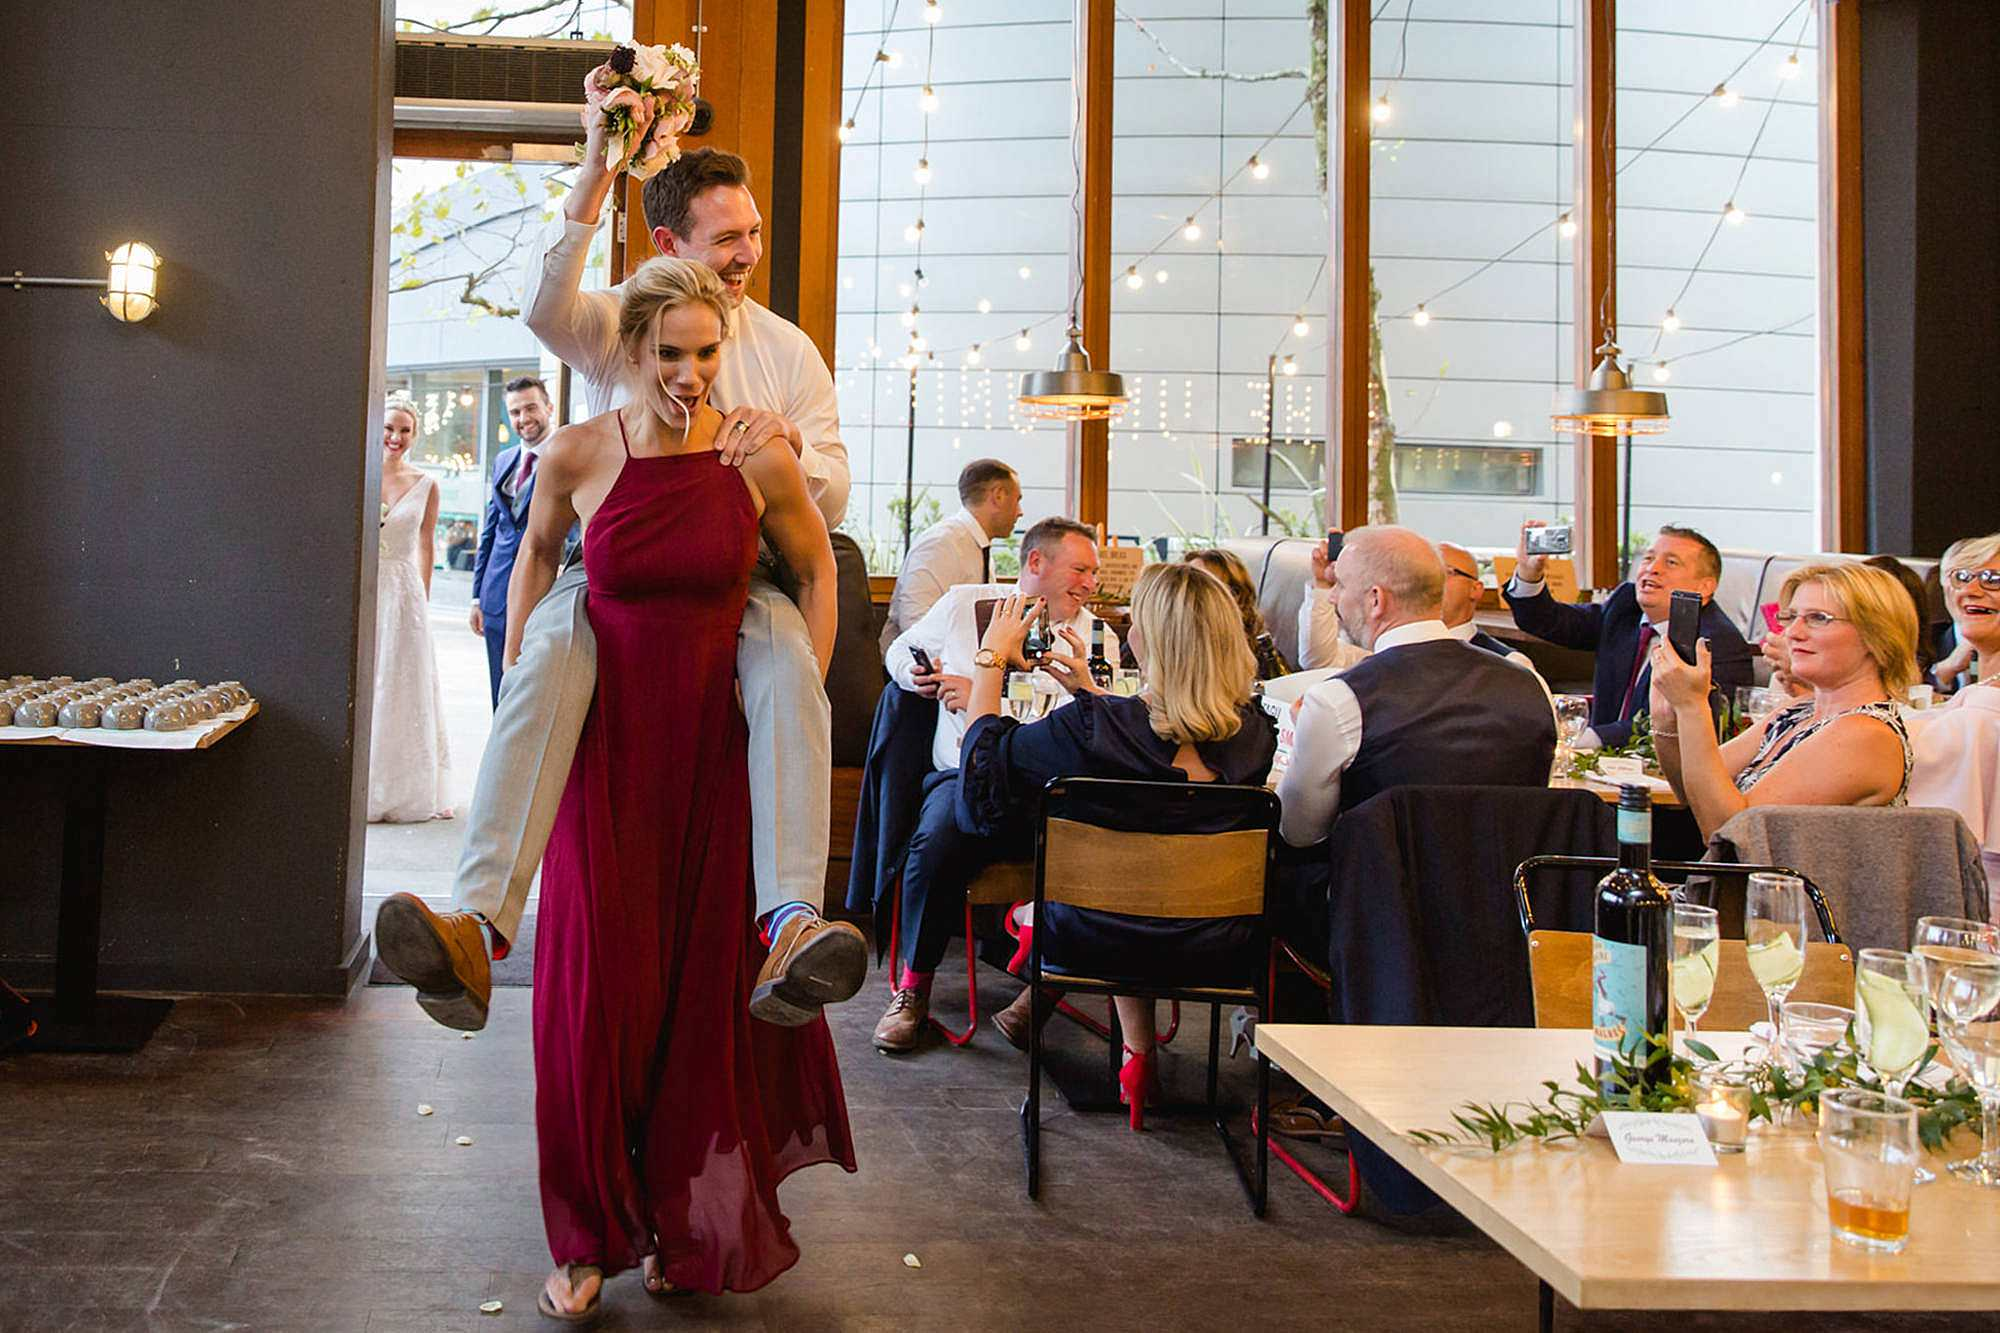 bridesmaid carries groomsman into wedding reception